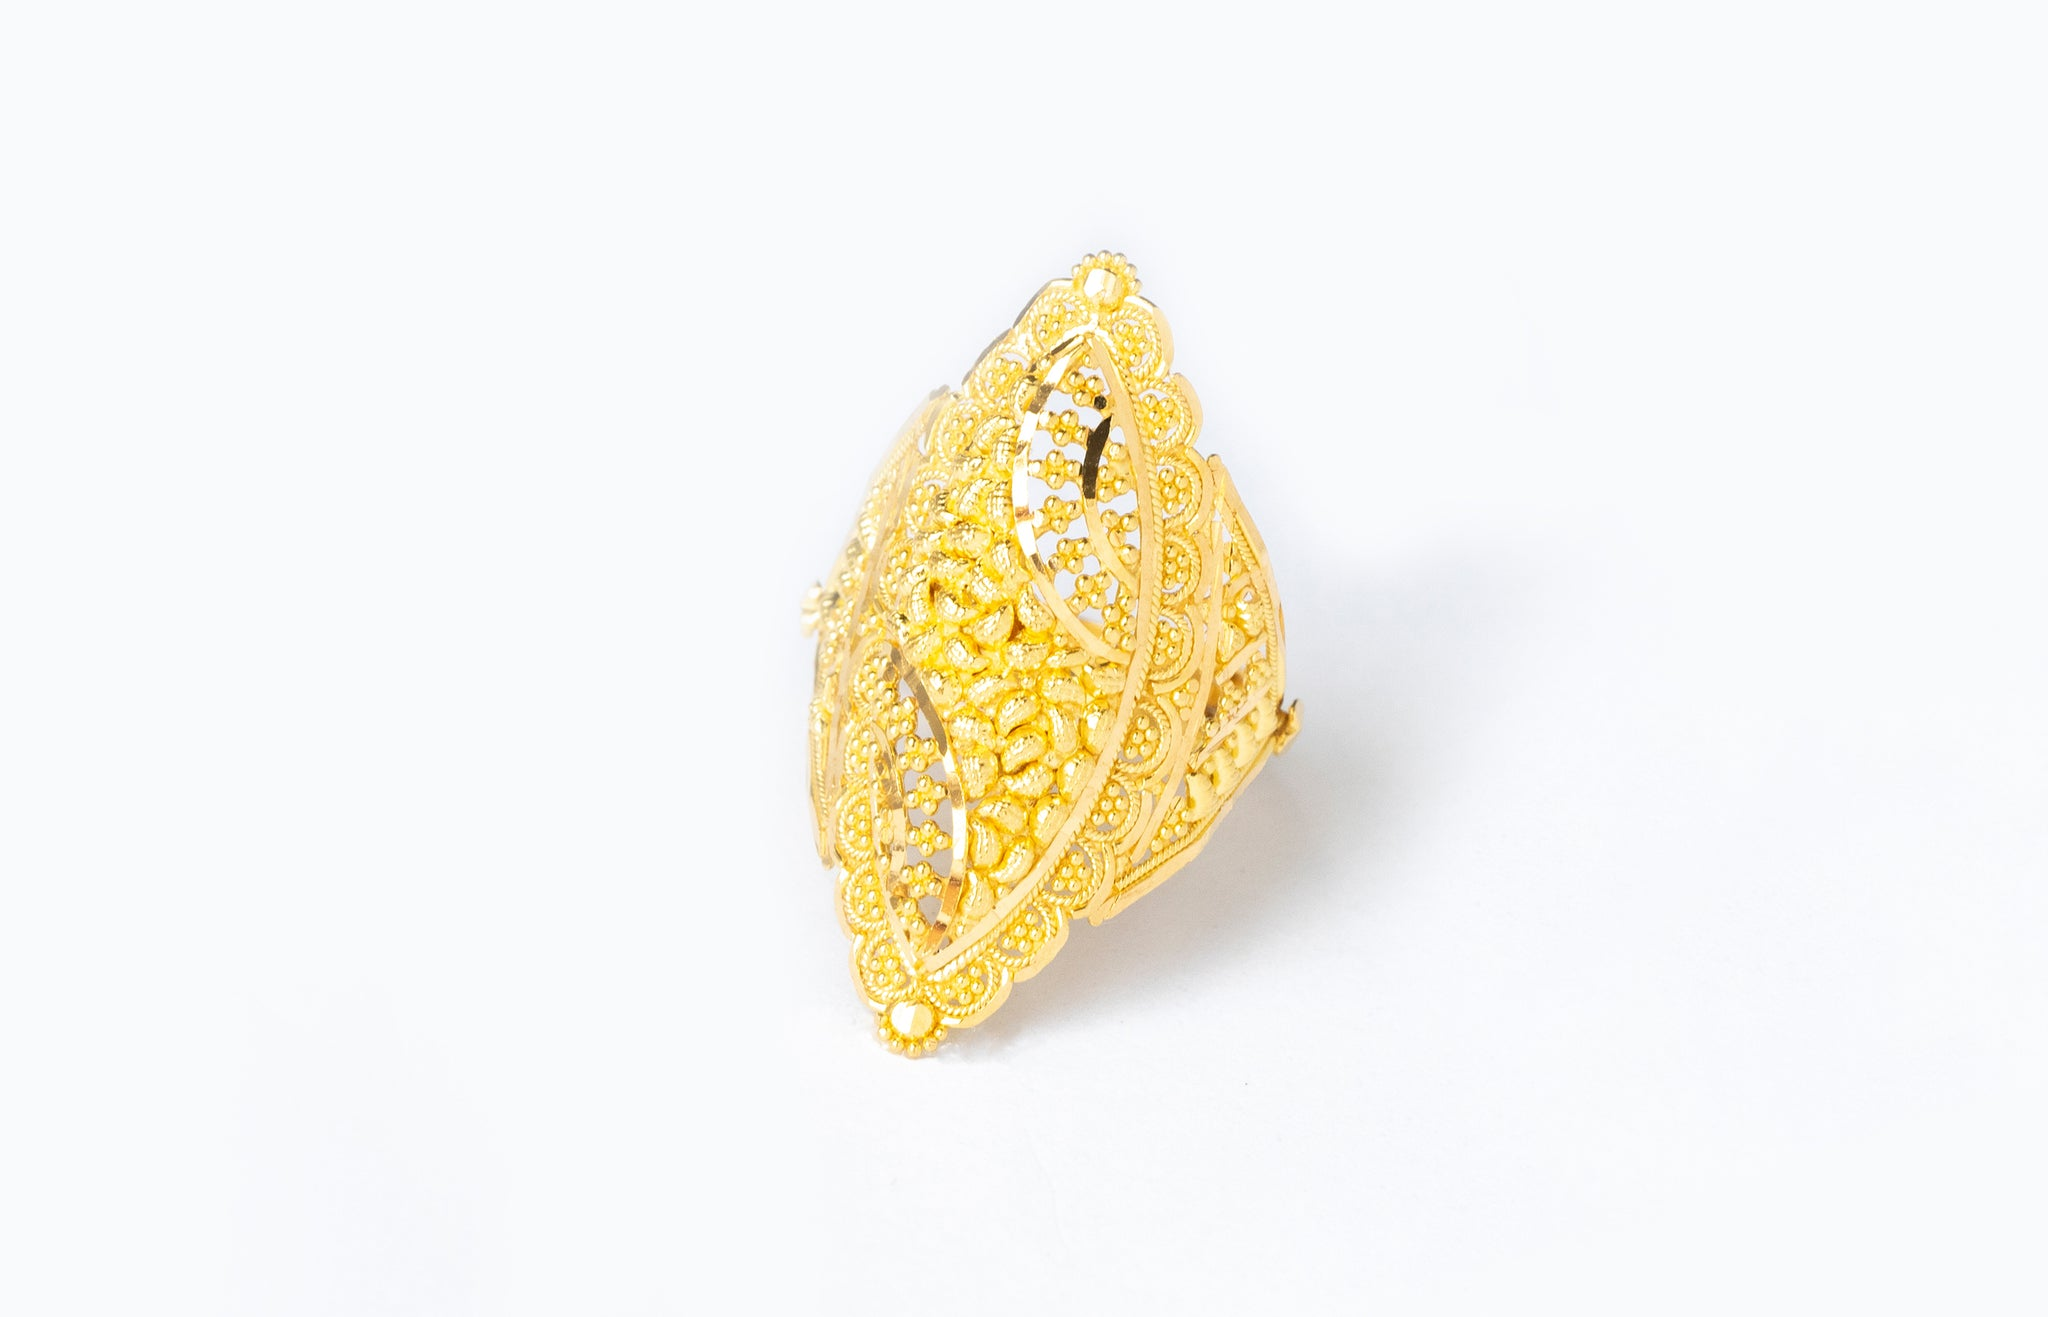 22ct Gold Filigree Dress Ring (6g) LR-7805